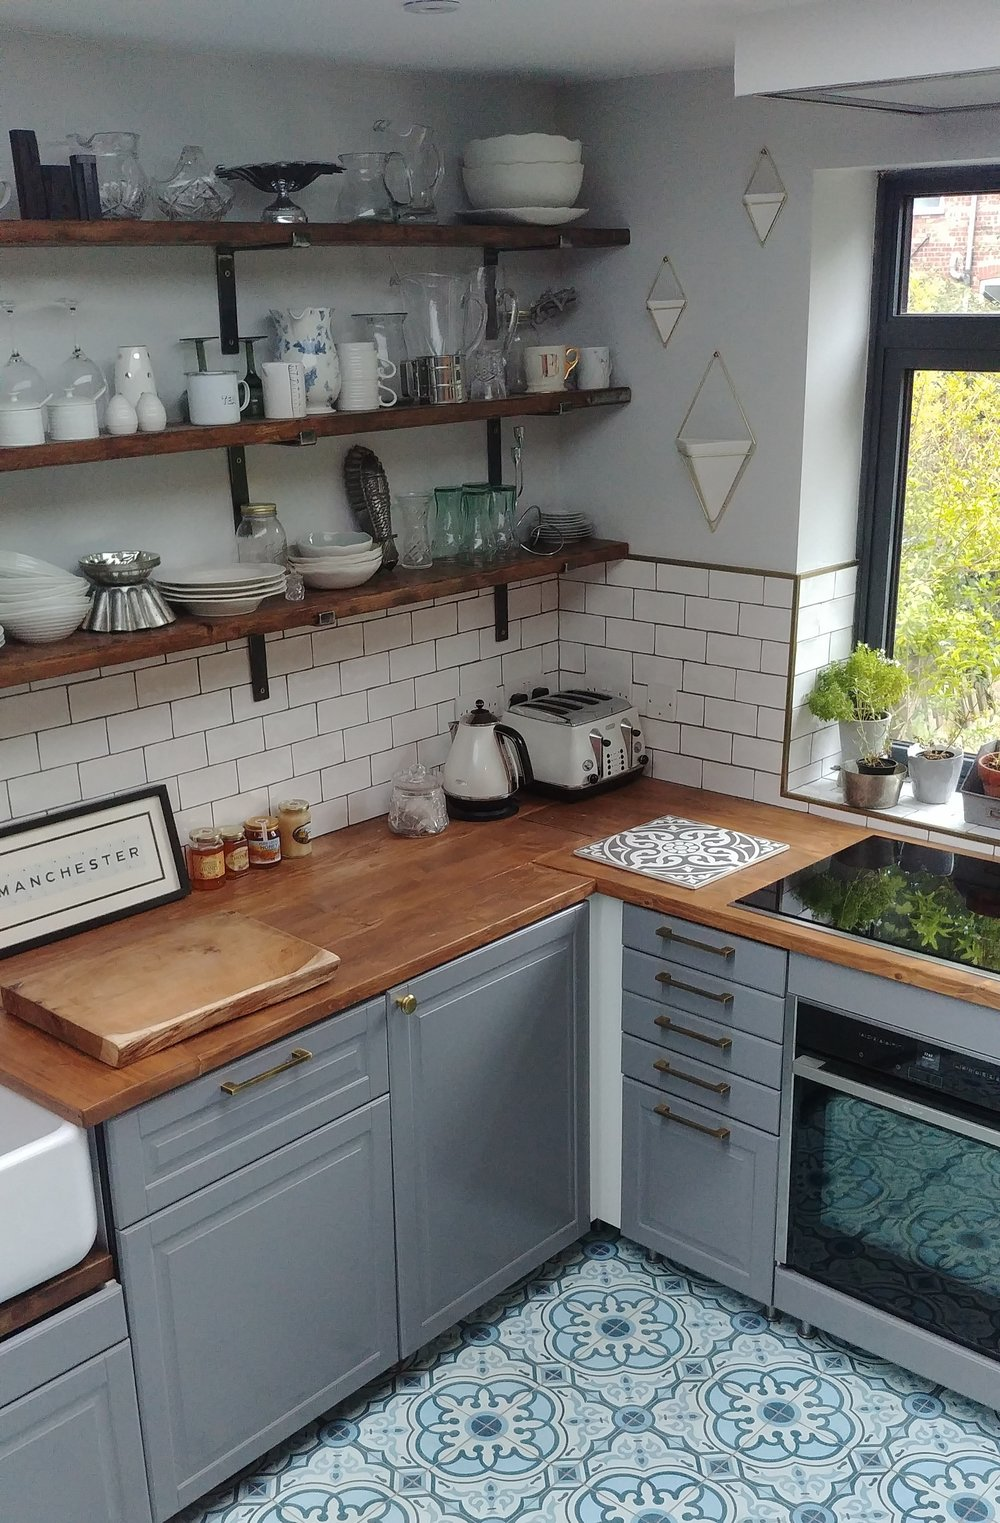 Every time I share a picture of this part of the kitchen on Instagram, someone asks me why we left the white pieces in the corners. Err, because we're lazy and haven't got round to installing the cover strips yet.